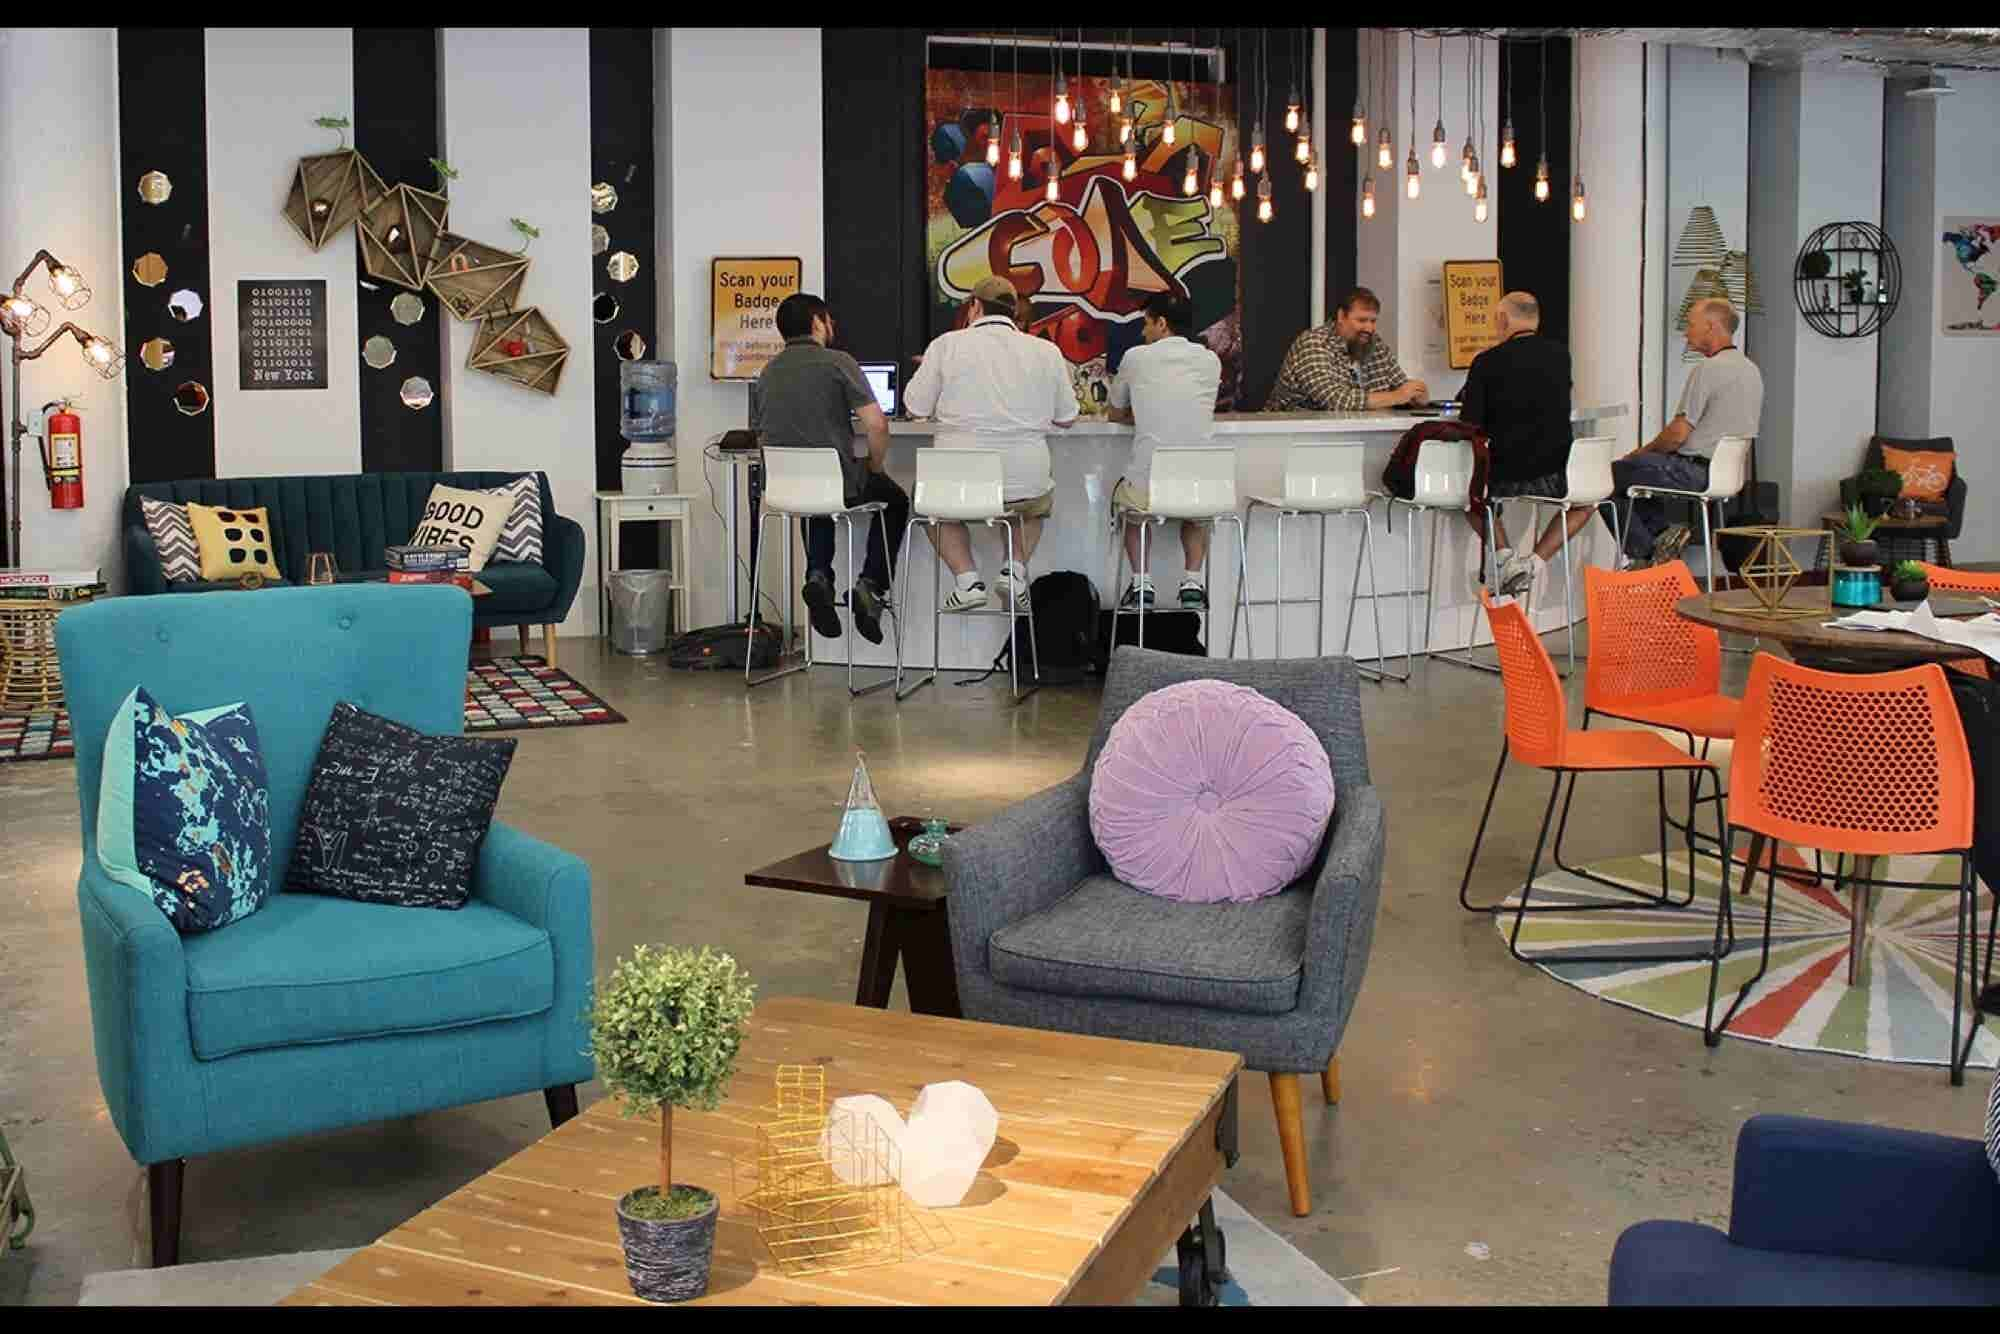 To Learn, Tap into Community: Lessons From Amazon's Pop-up Loft